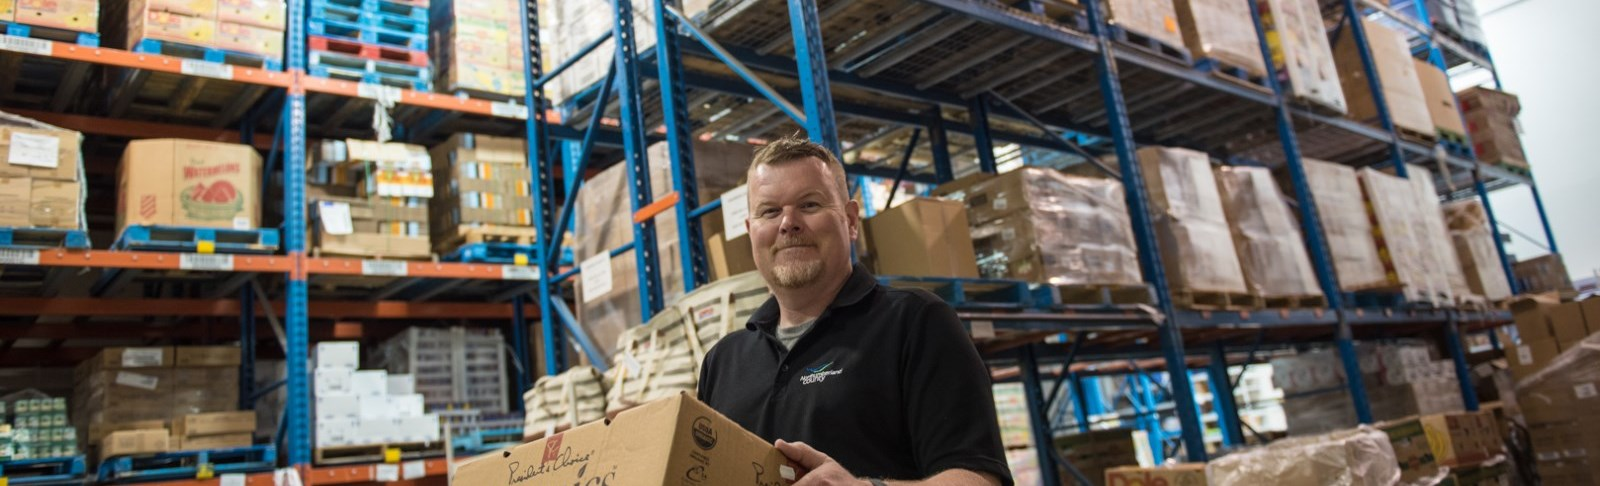 Man holding box in warehouse